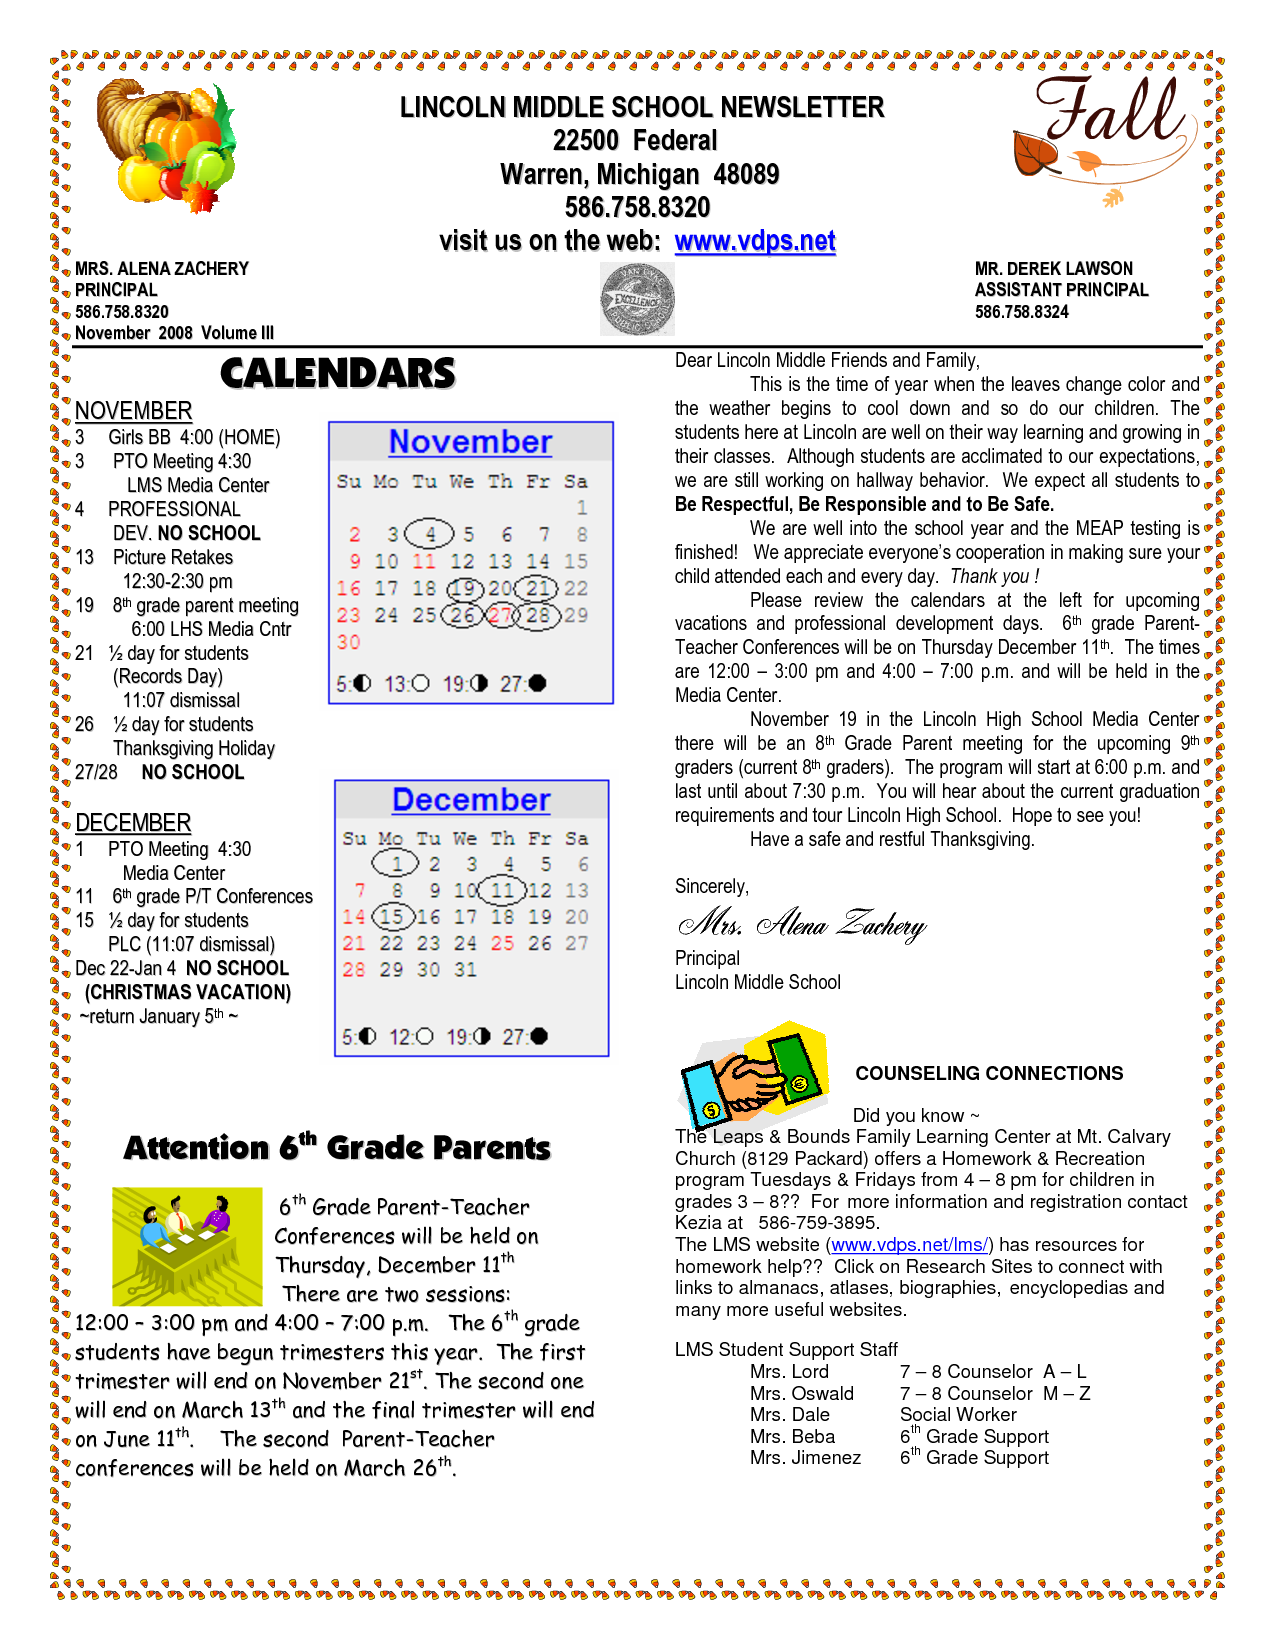 school newsletter templates | LINCOLN MIDDLE SCHOOL ...